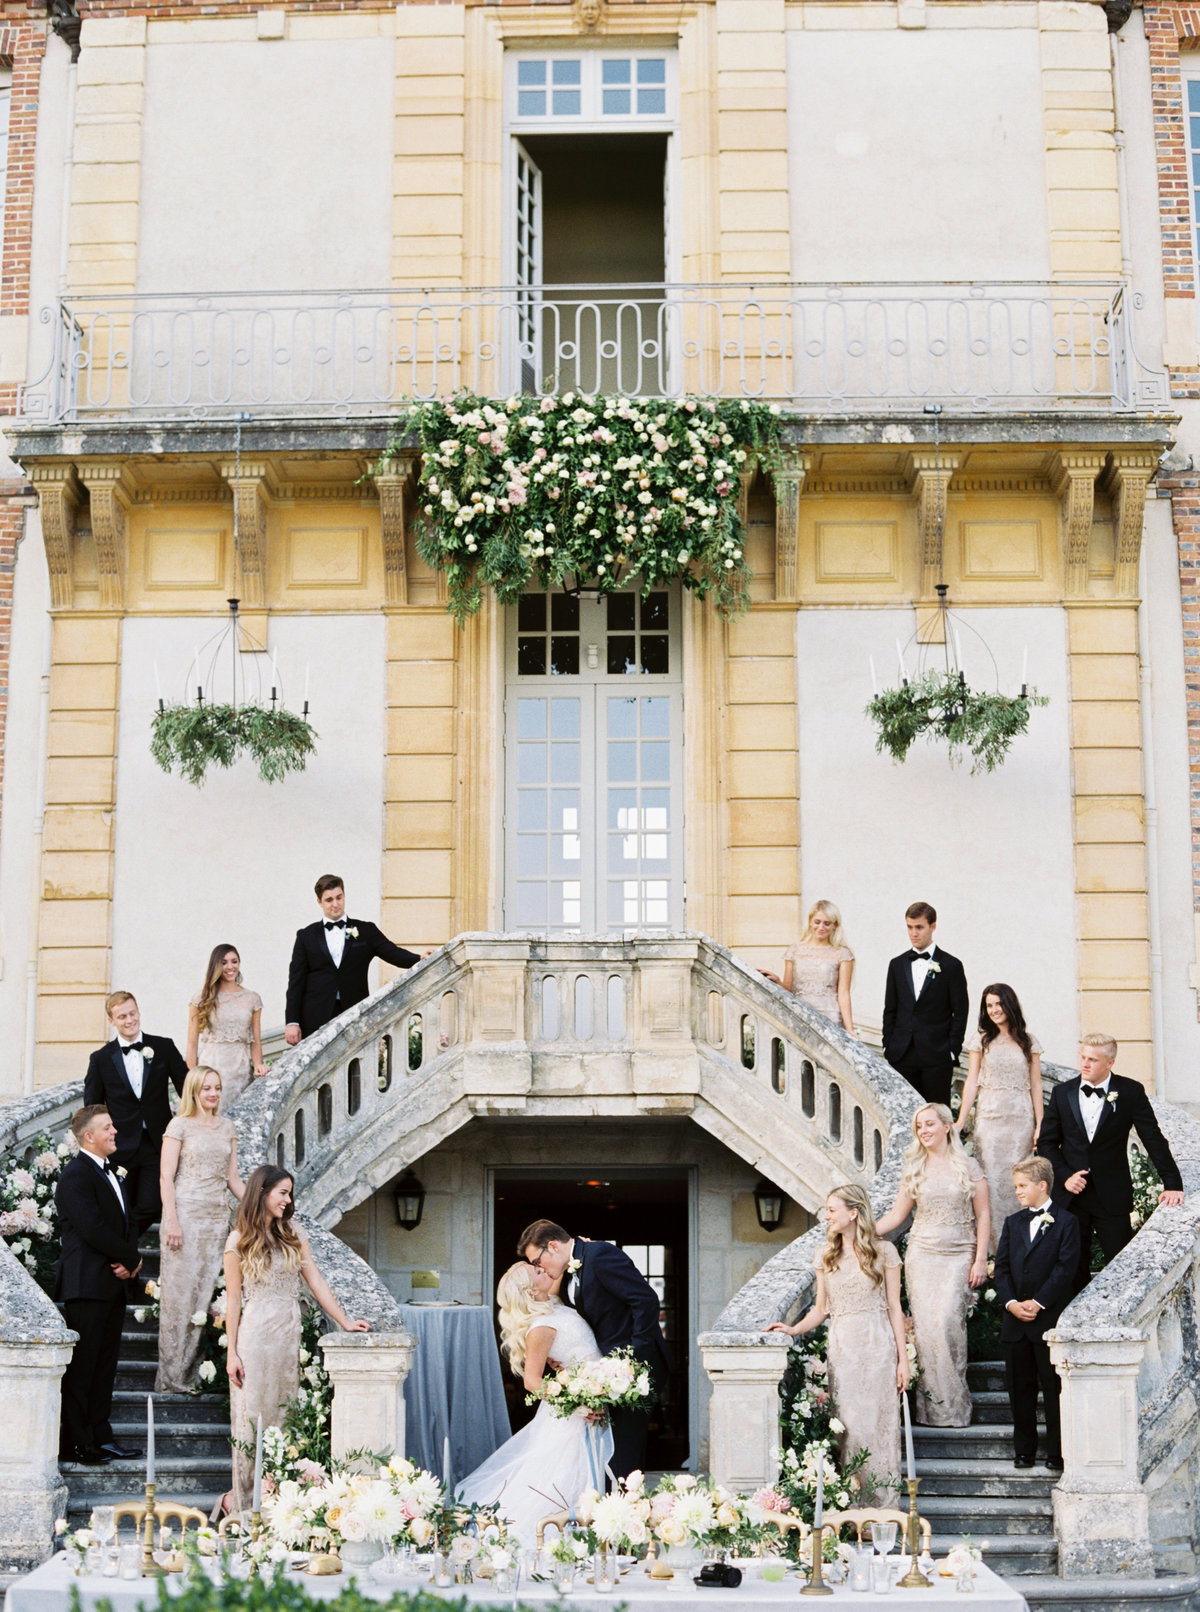 Paris France Wedding - Mary Claire Photography-13